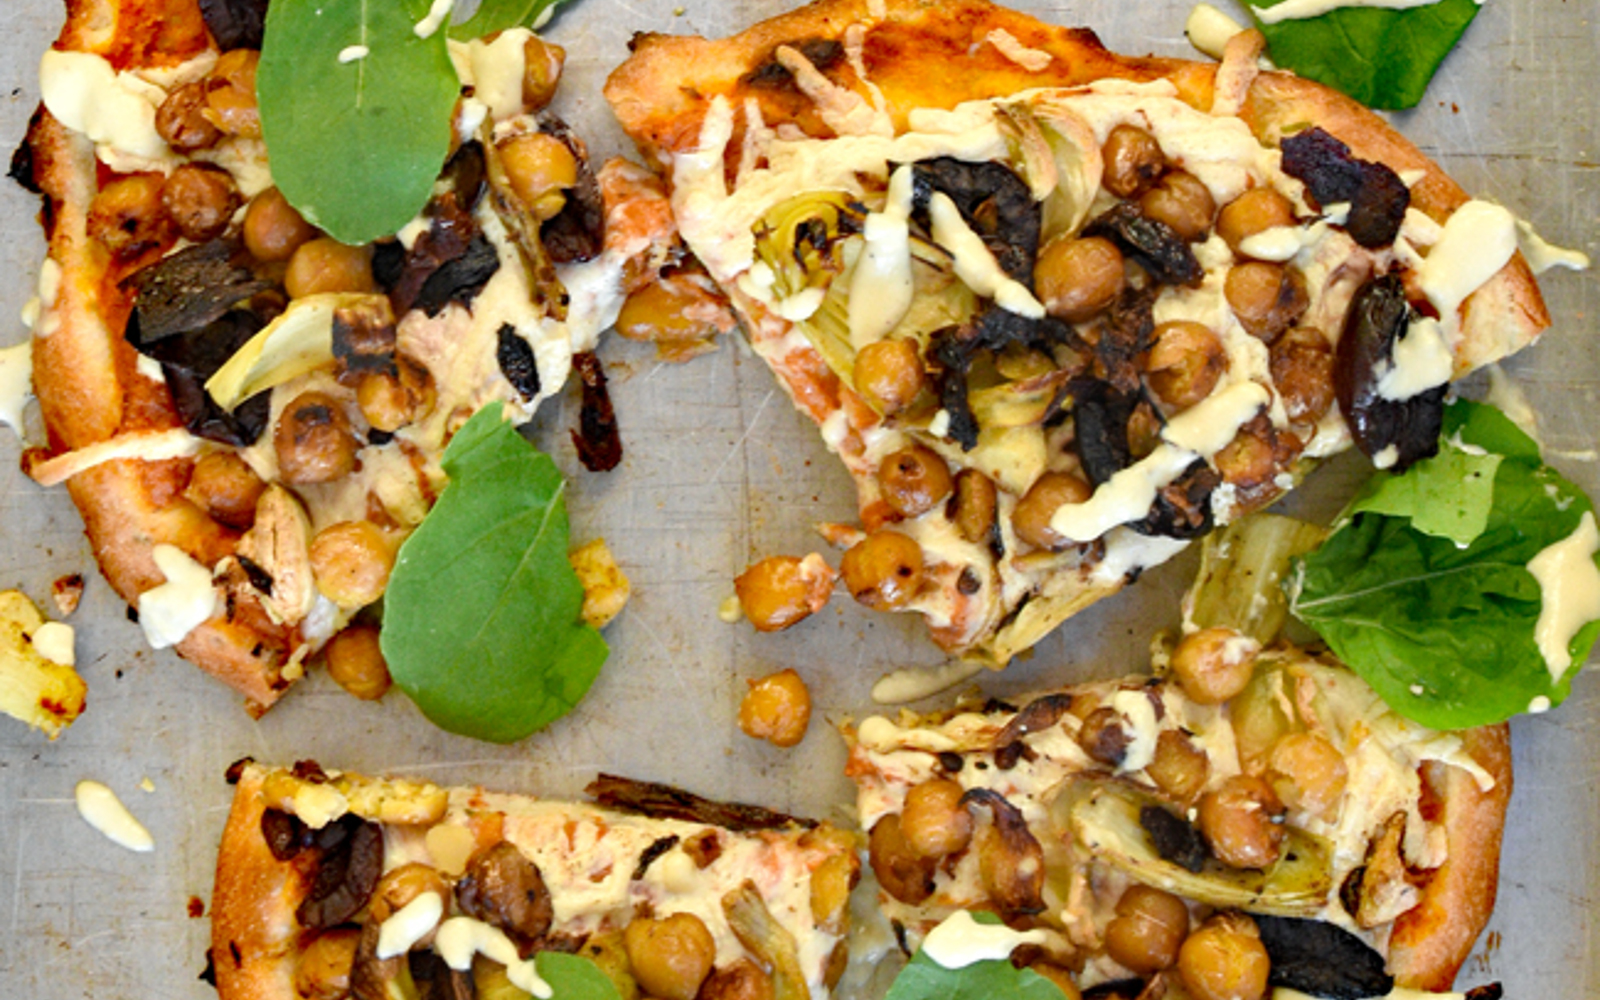 Roasted Garlic and Chickpeas Pizza 2